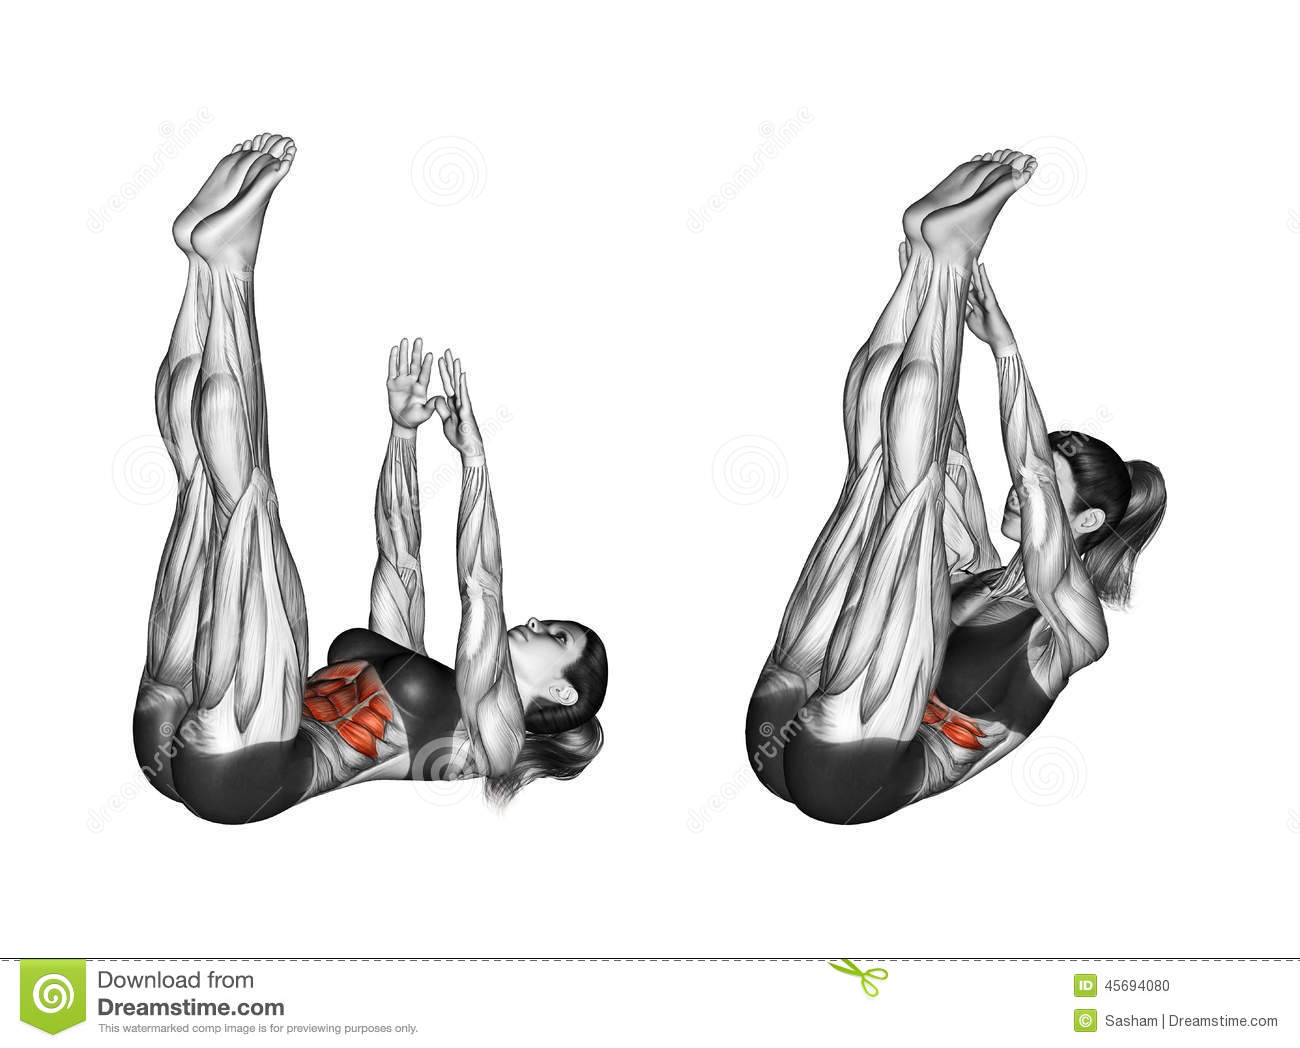 Fitness Exercising. Flexion Of The Body With A Compound Of